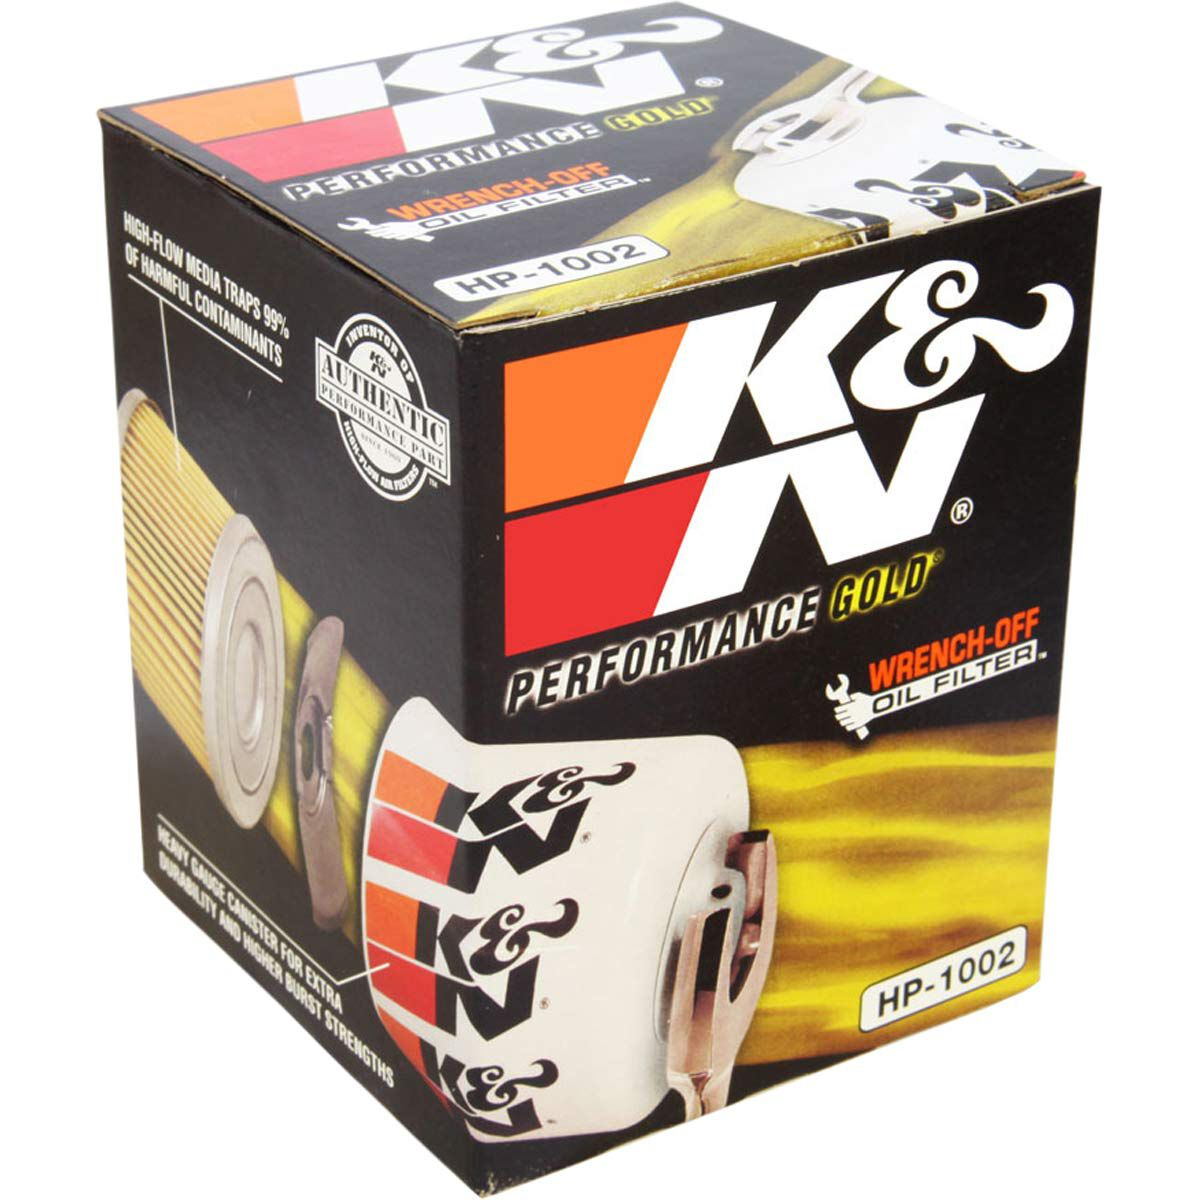 K/&N HP-1002 Performance Wrench-Off Oil Filter